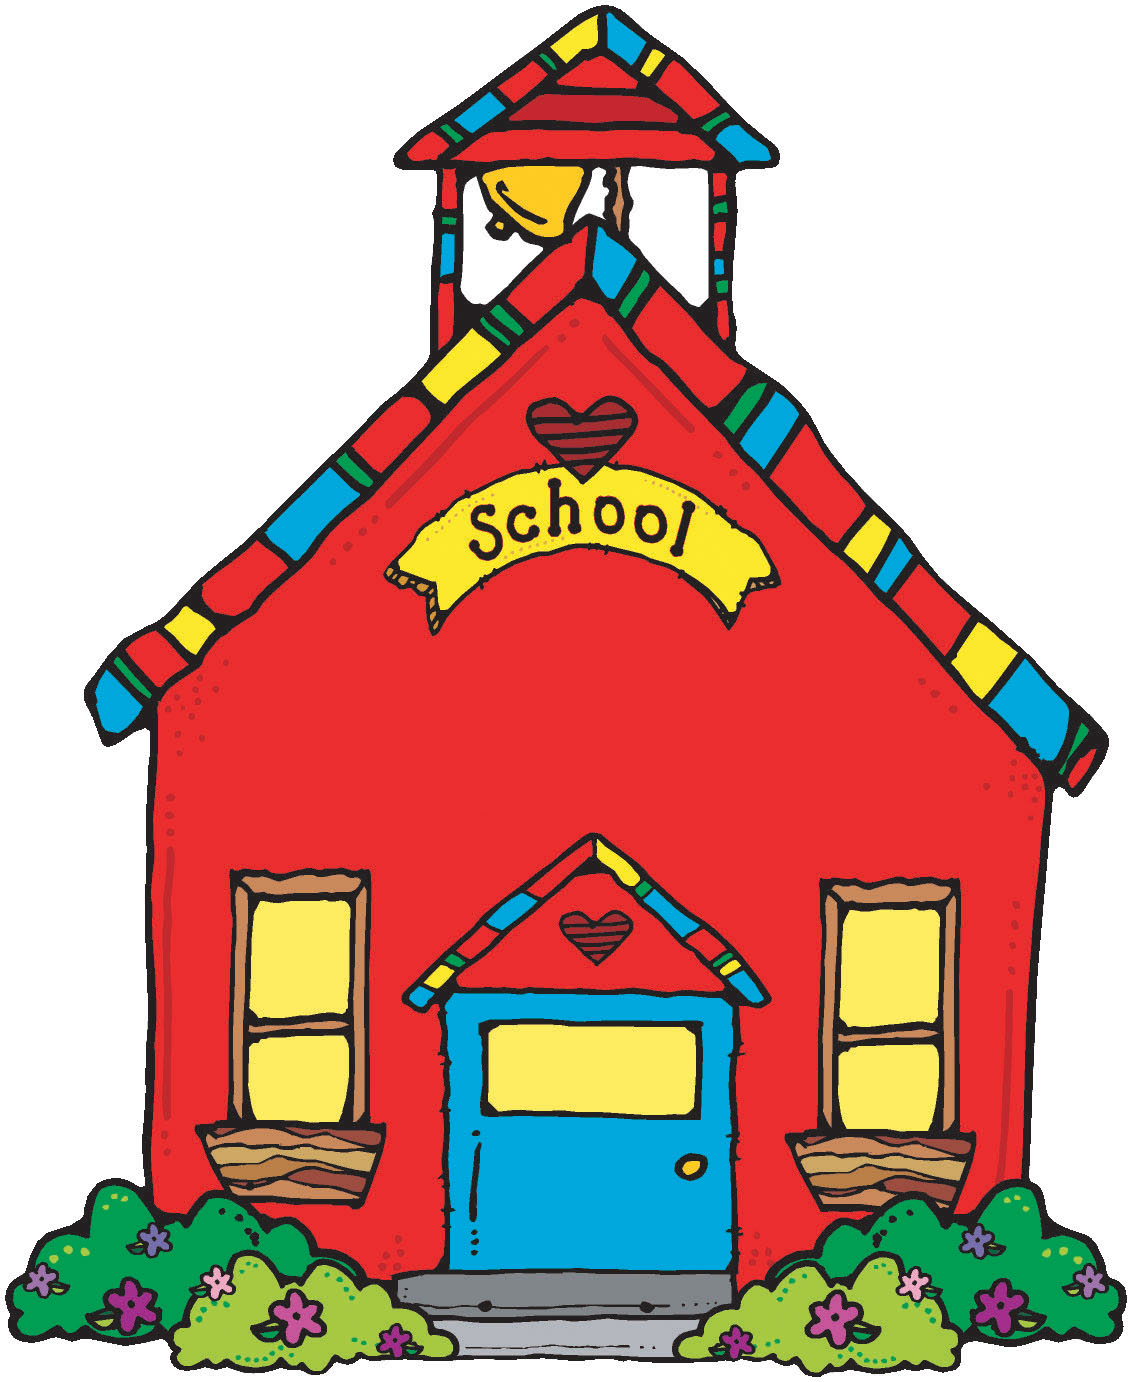 Little red schoolhouse clipart picture transparent 88+ Clipart Schoolhouse | ClipartLook picture transparent